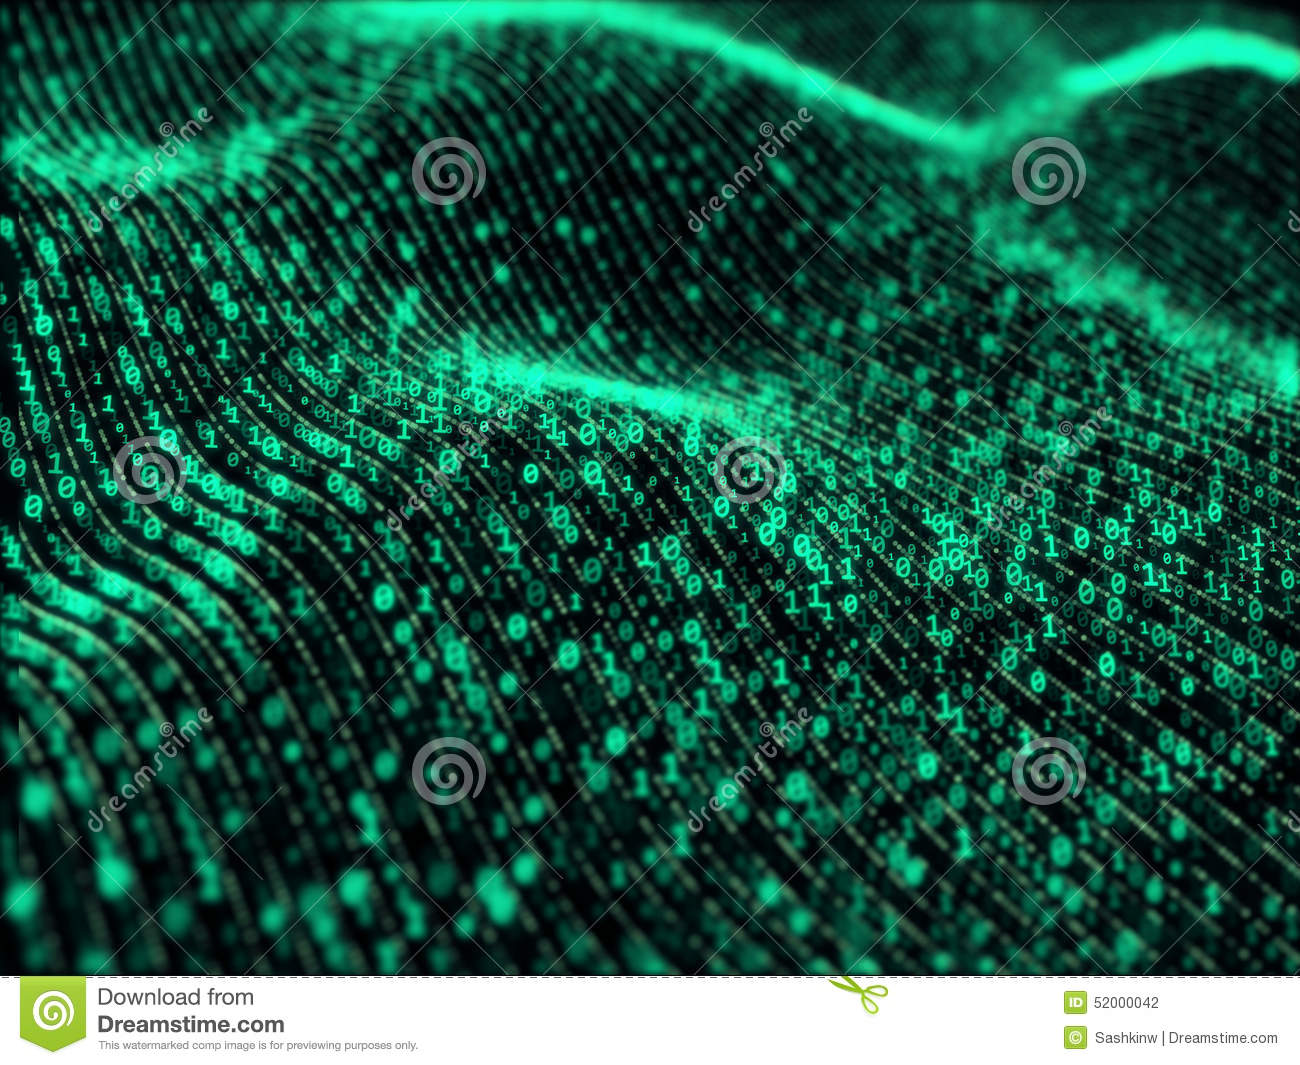 Download Waves Of Digital Information Stock Photo - Image of information, glitch: 52000042